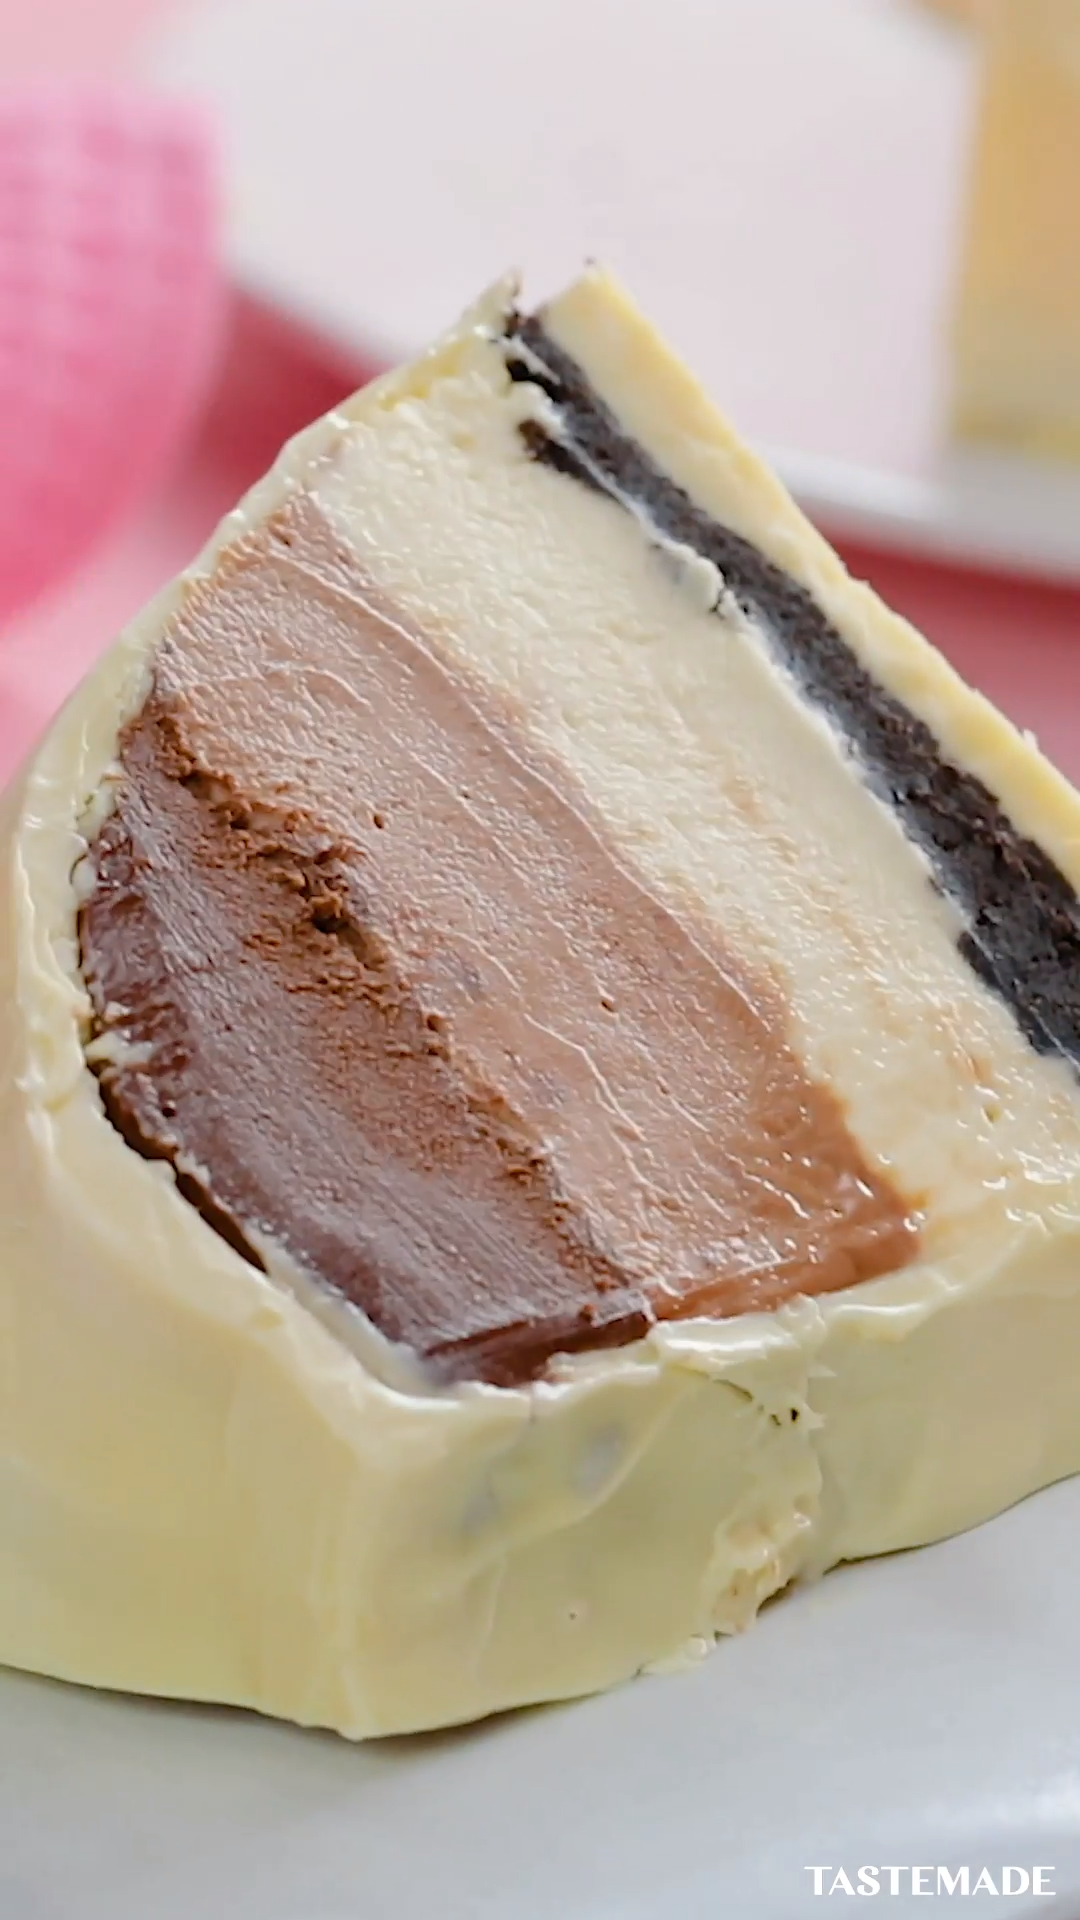 This just in: A bonbon cake tastes like velvet chocolate and is worth every single bite.